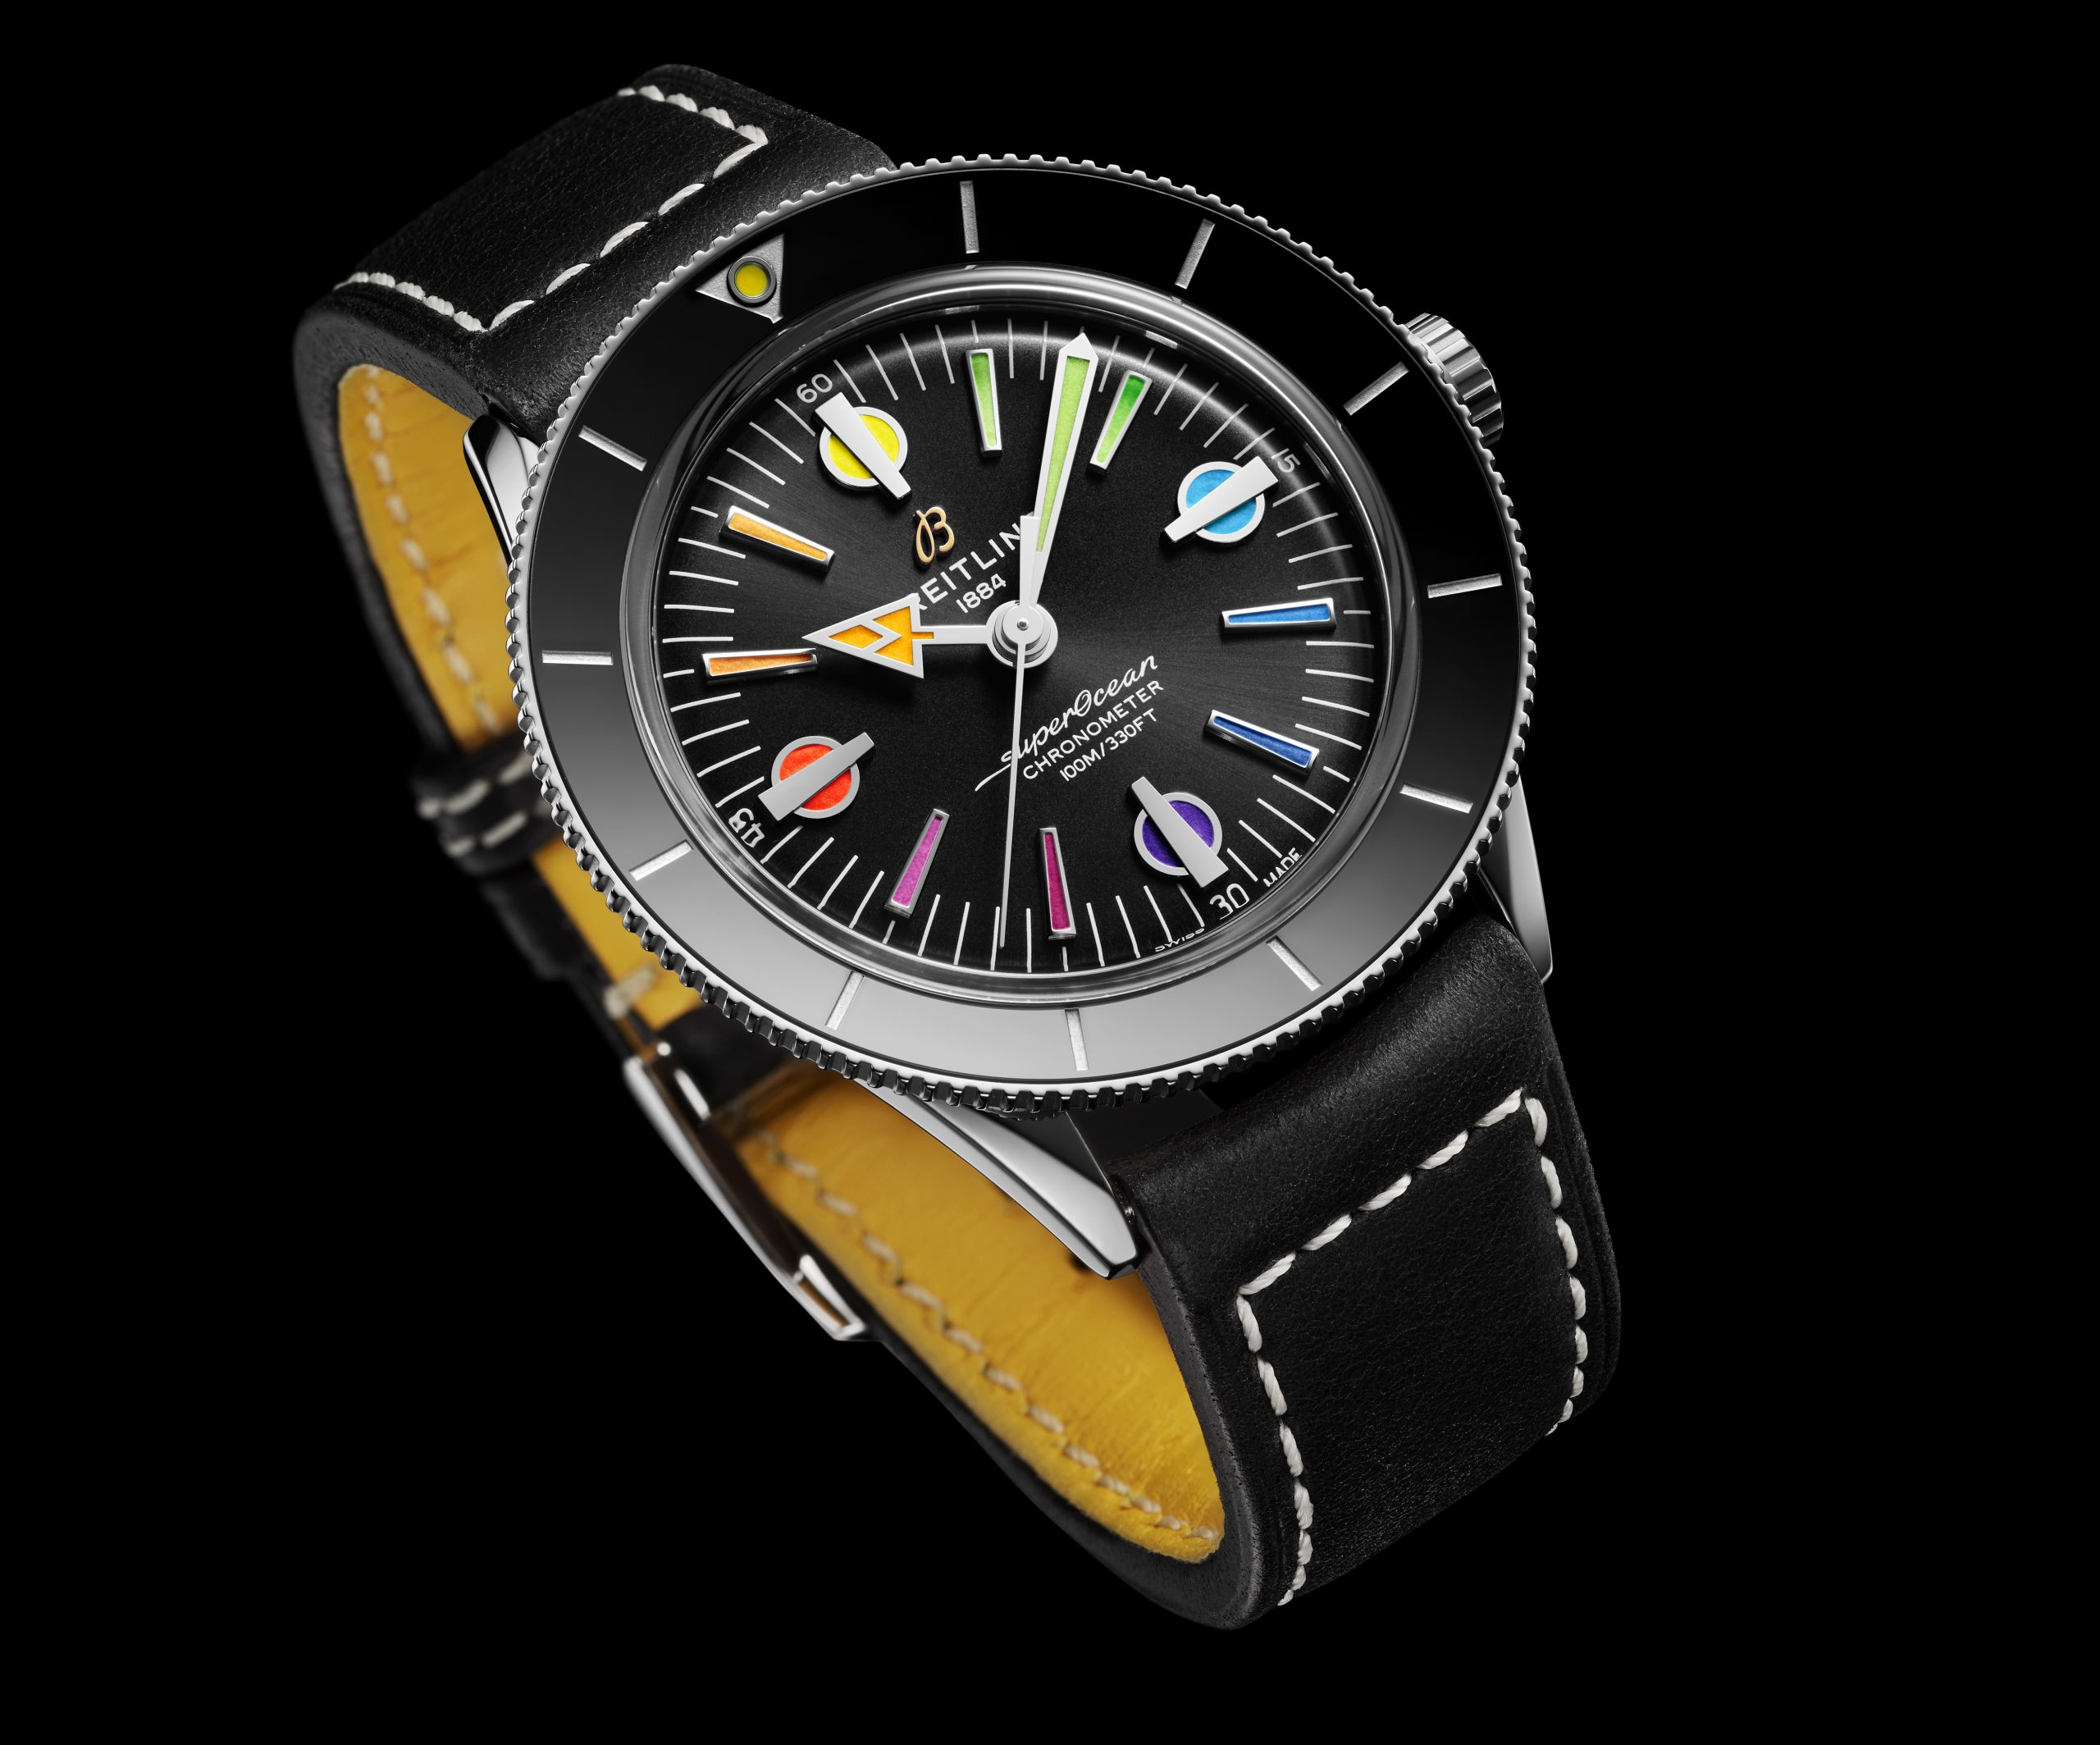 Breitling Superocean Heritage '57 Limited Edition watch